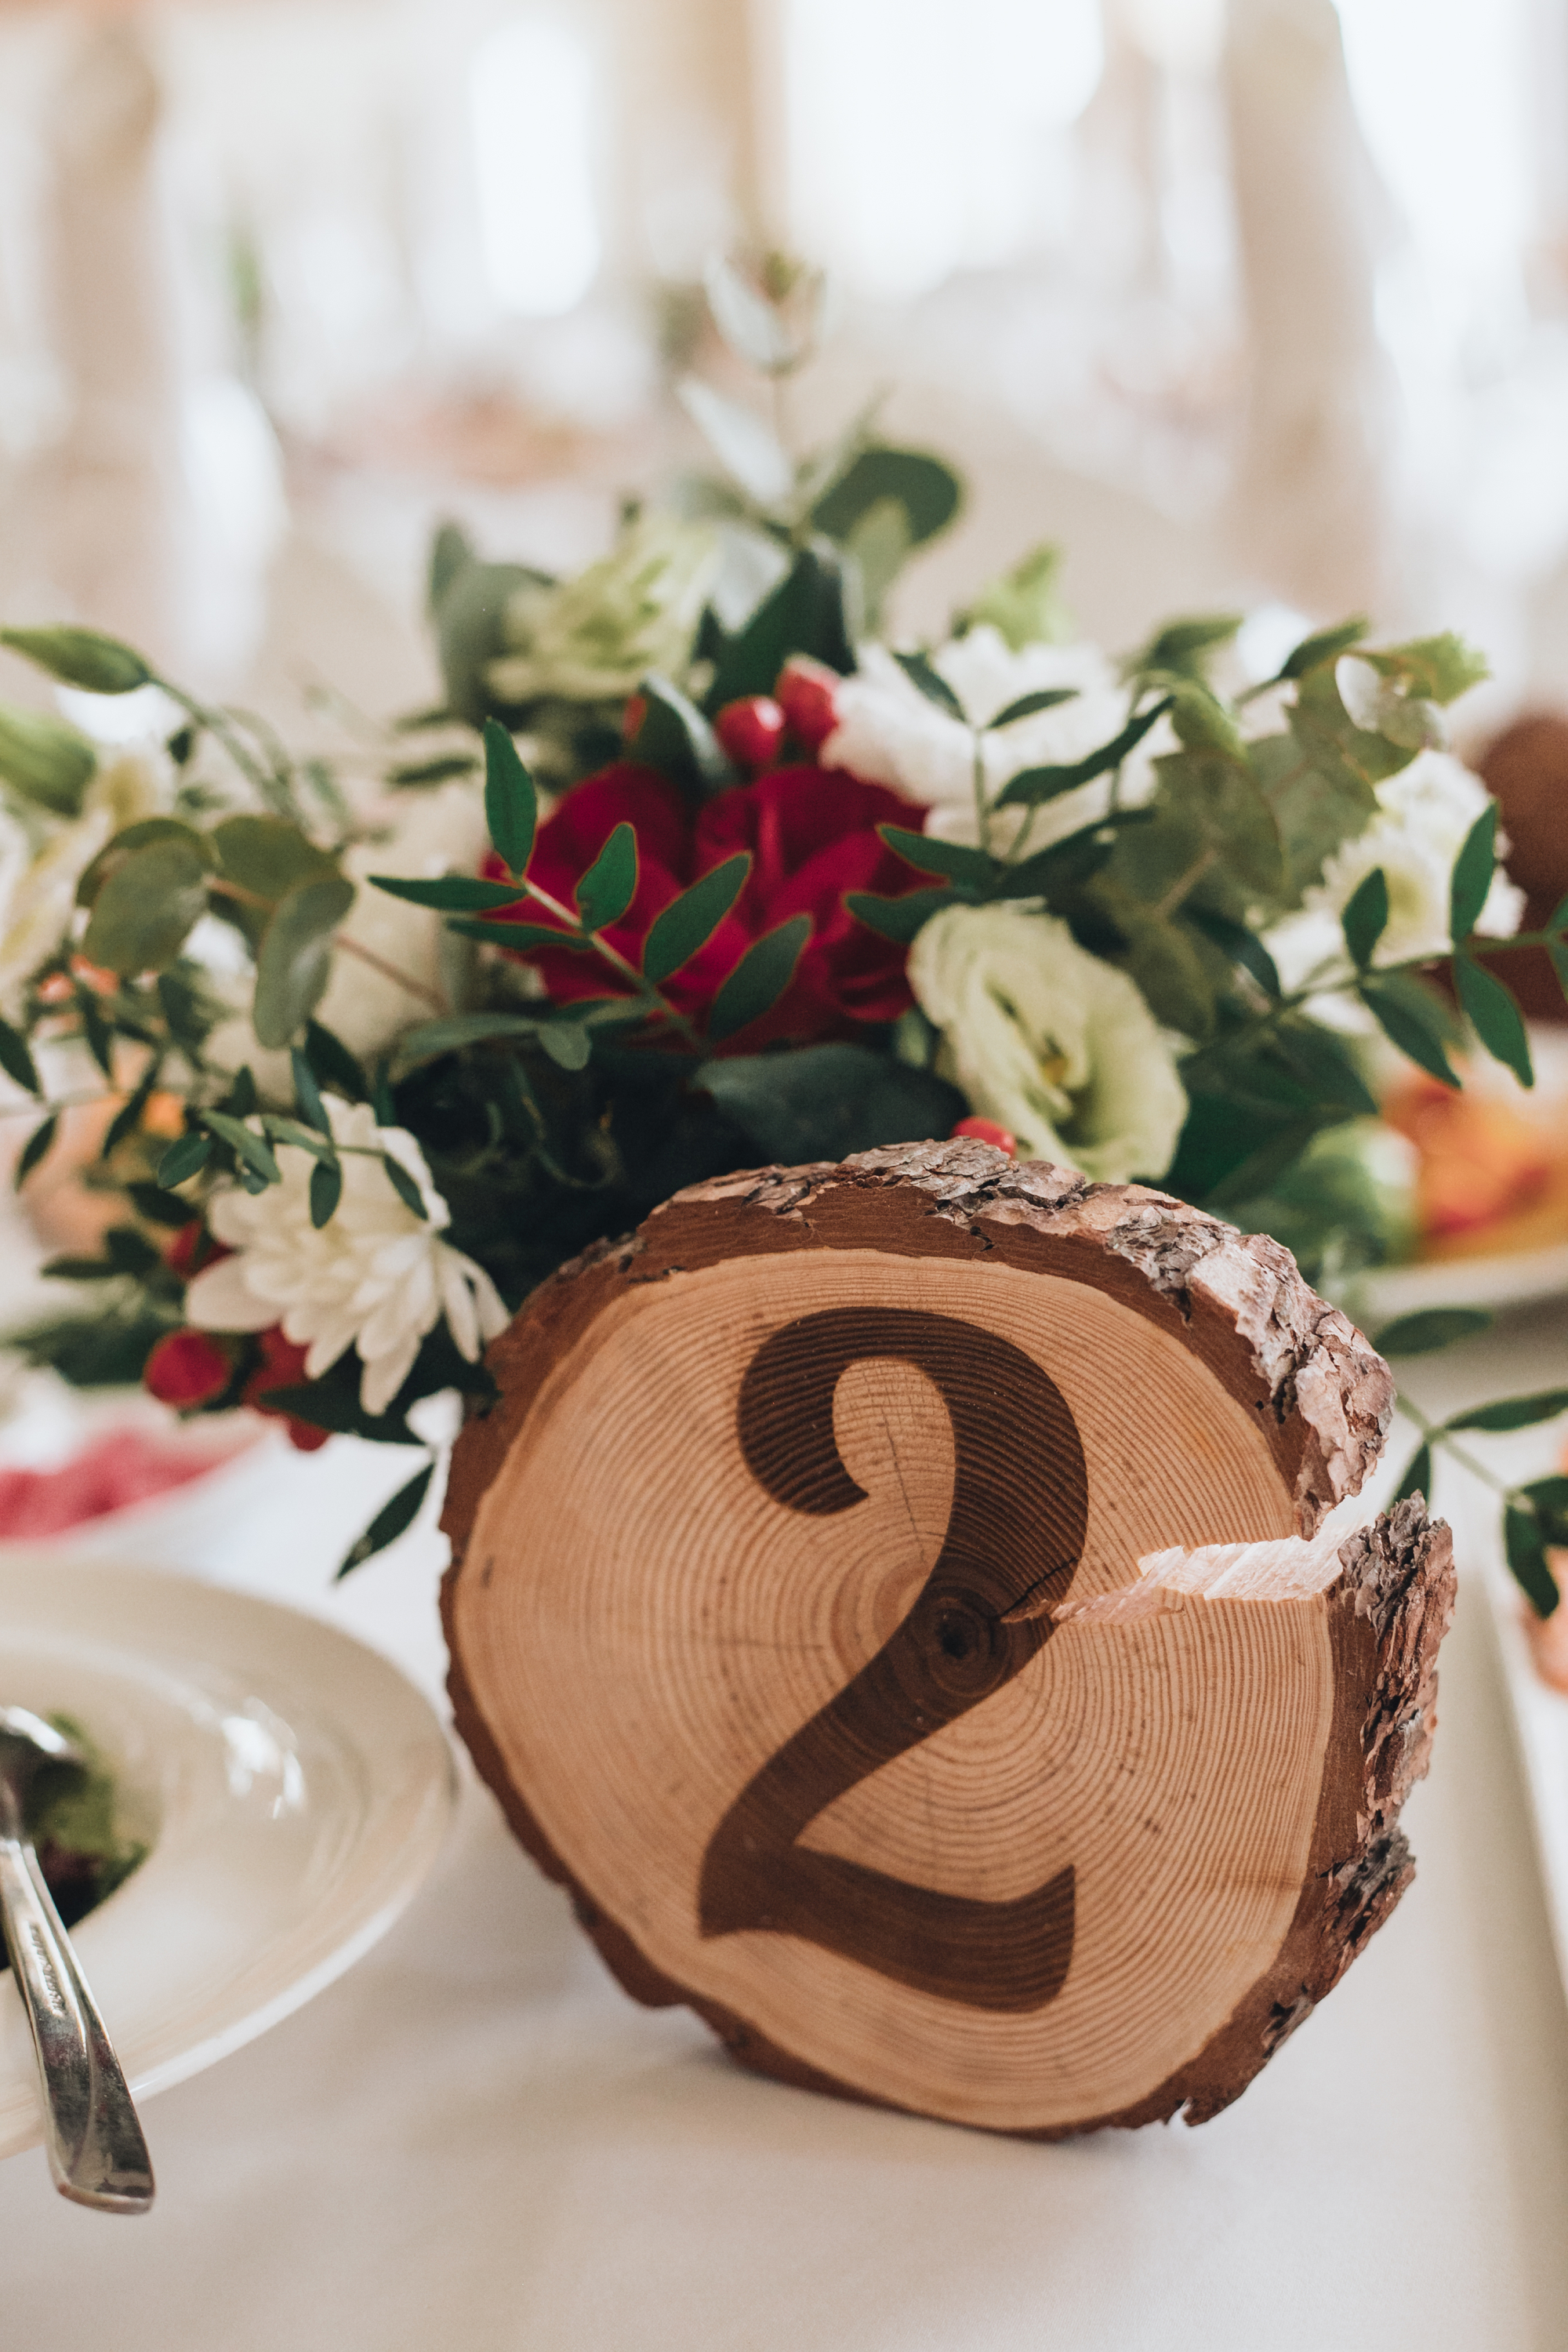 table number | table number idea | creative table number ideas | table numbers | wedding decor | reception decor | decor | table decor | wedding table decor